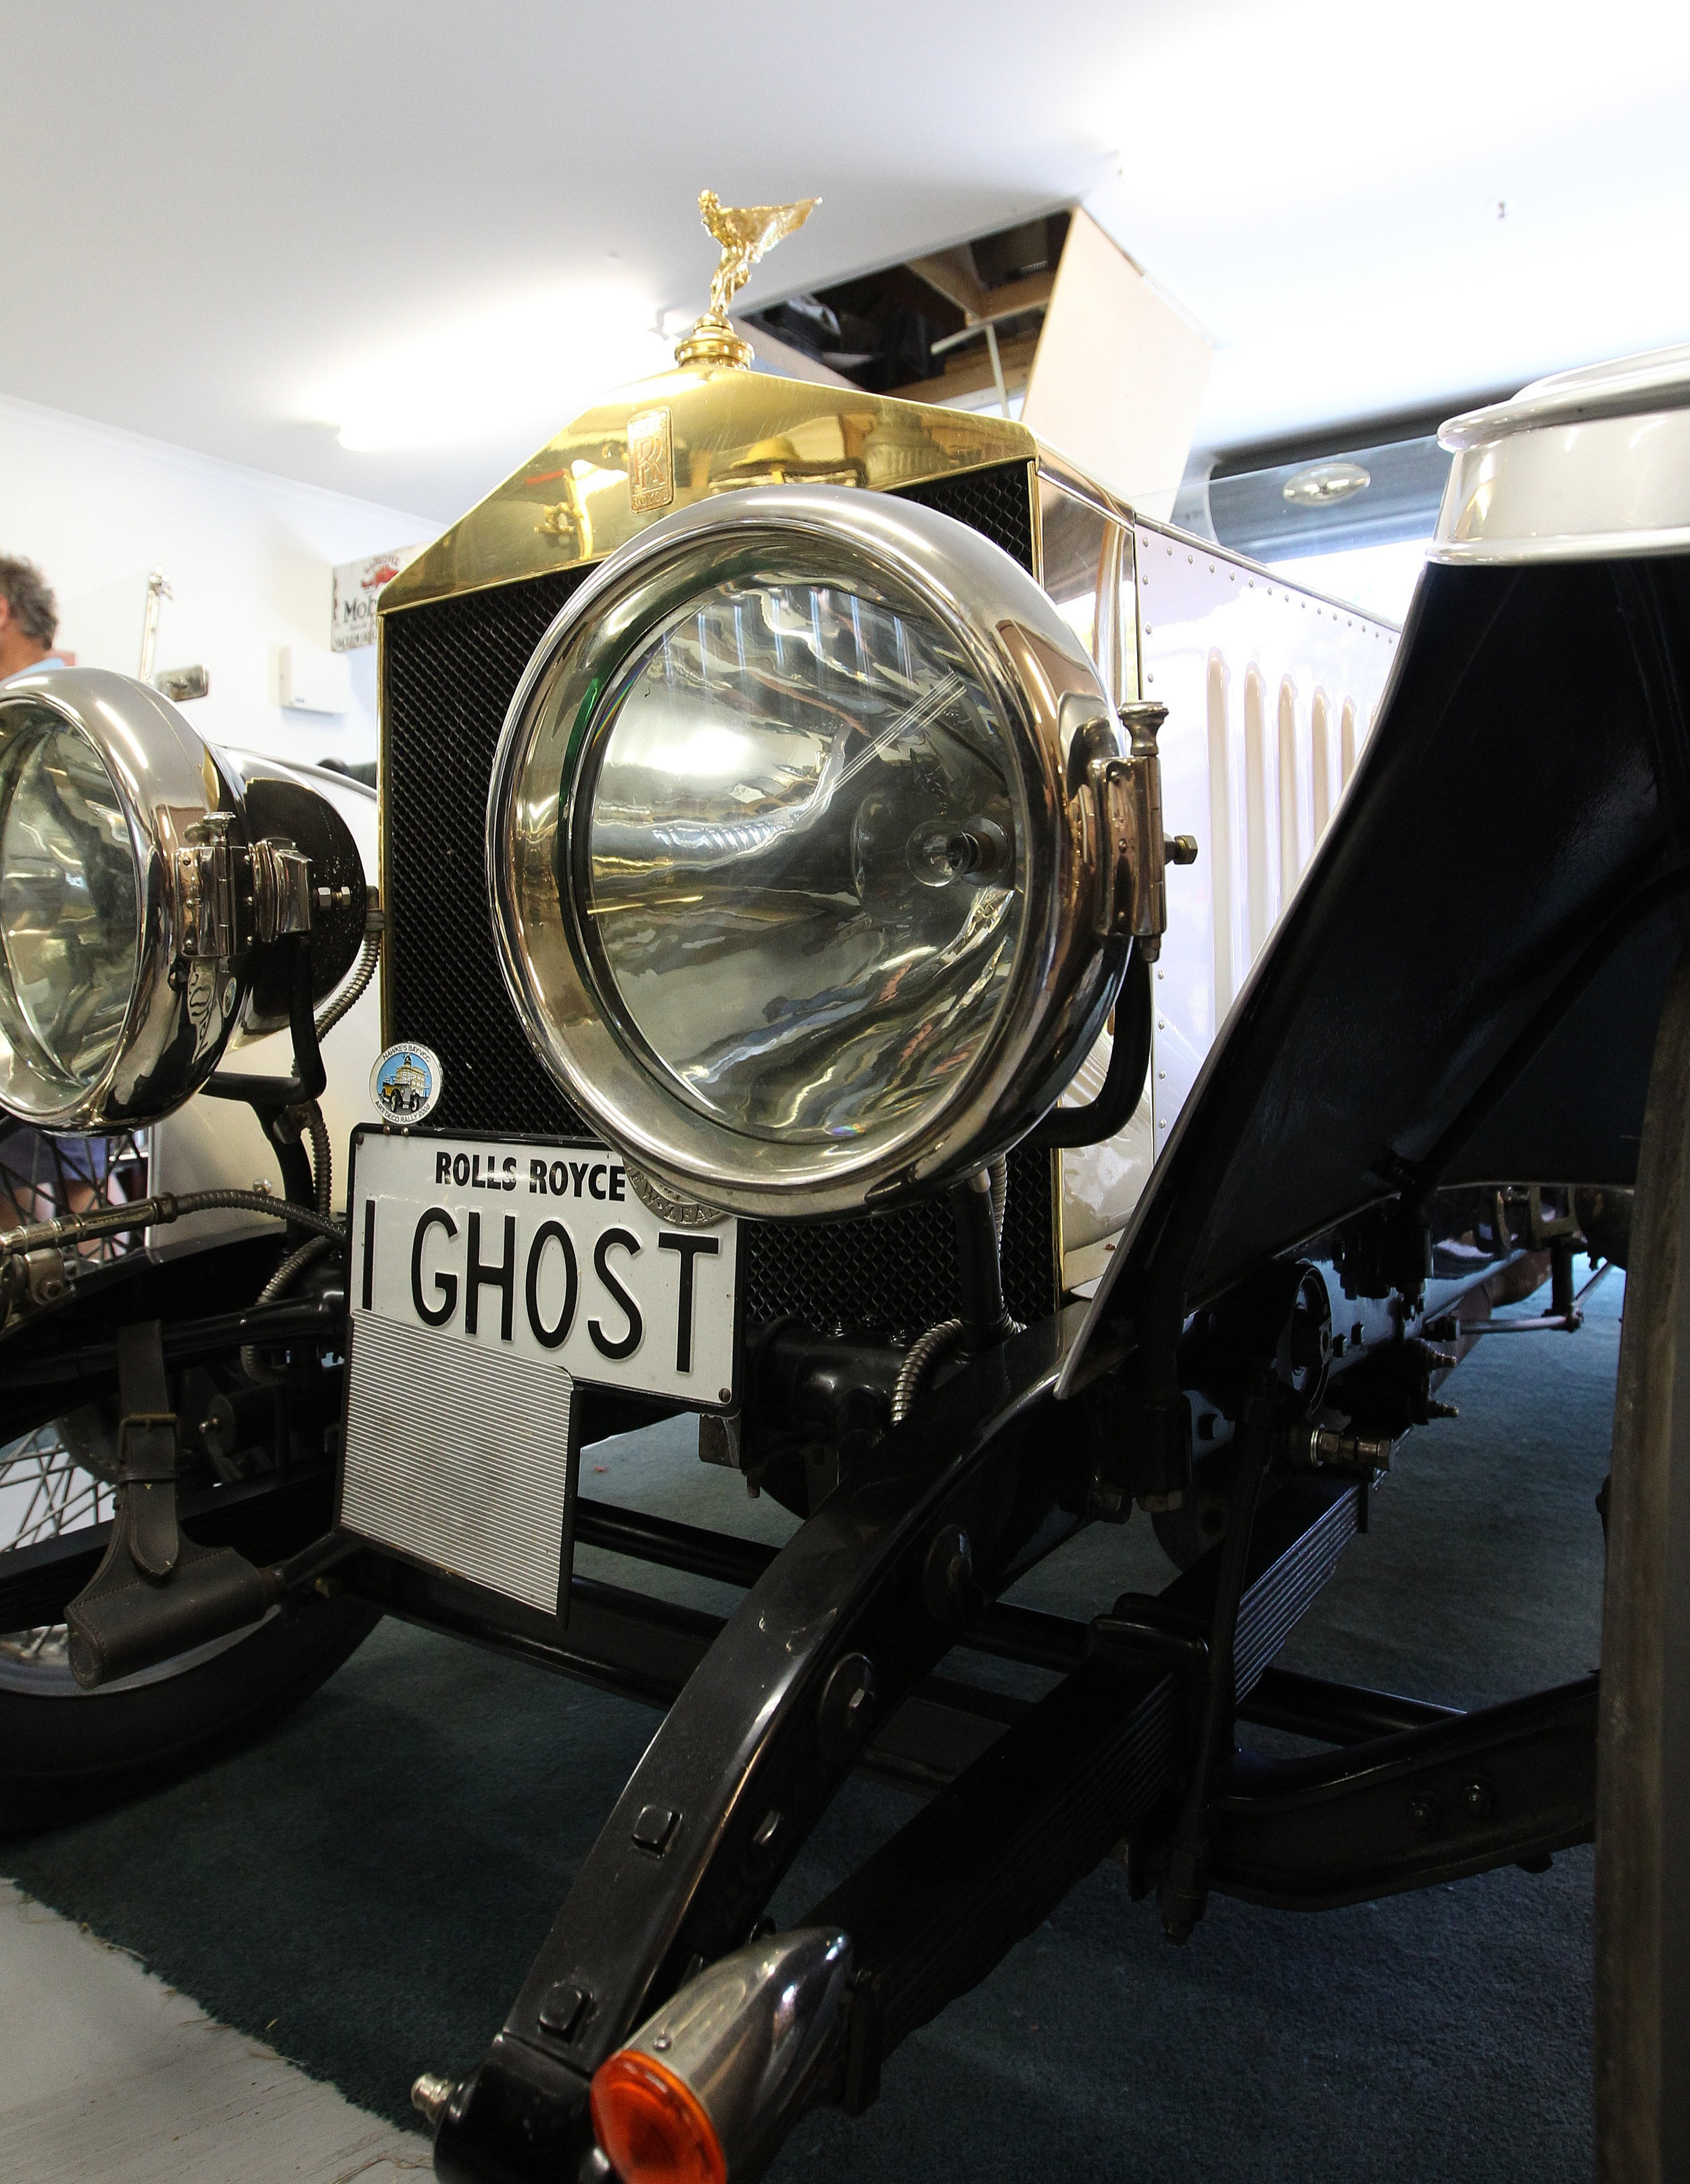 When headlamps were as much a feature as practicality